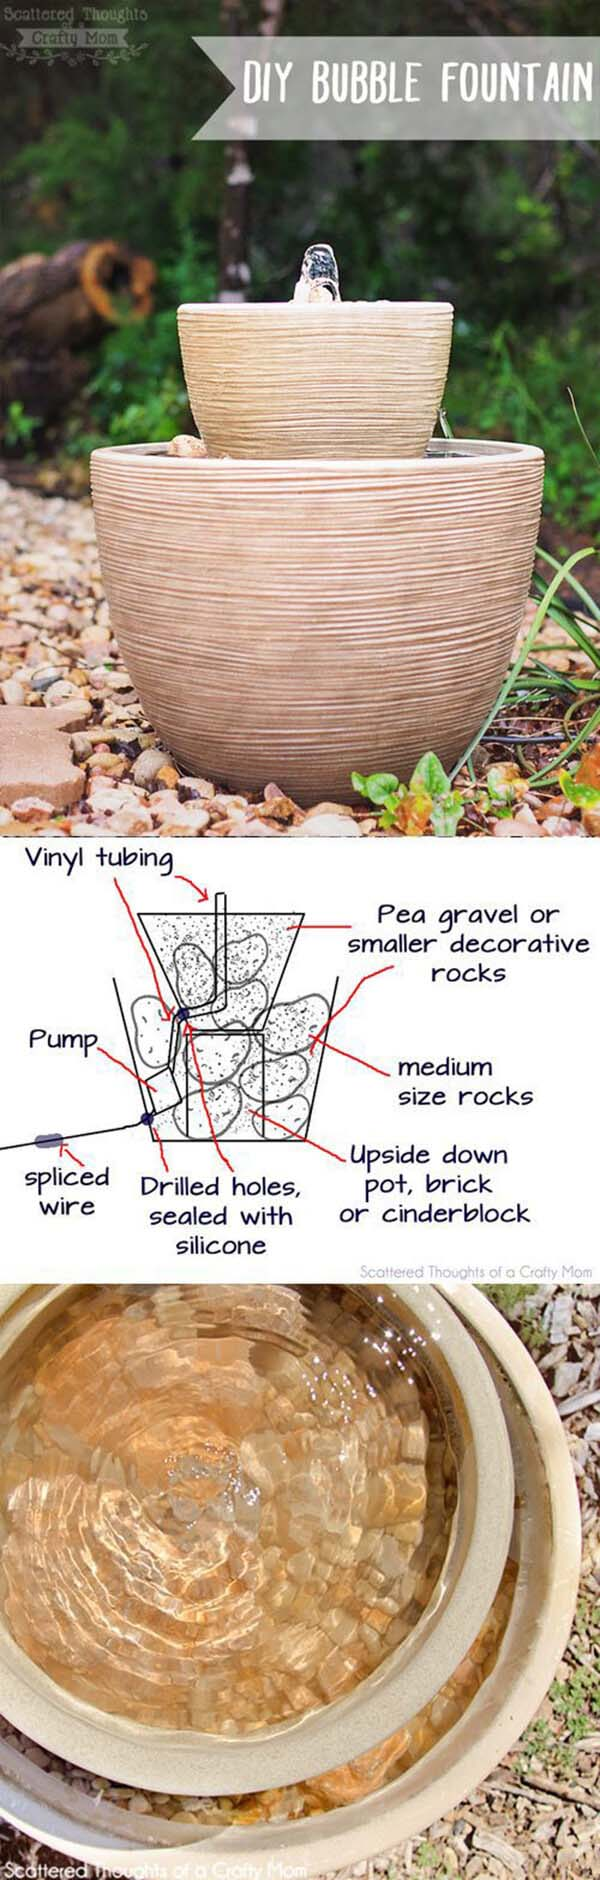 Simple Potted Bubble Fountain #diy #waterfeature #backyard #garden #decorhomeideas